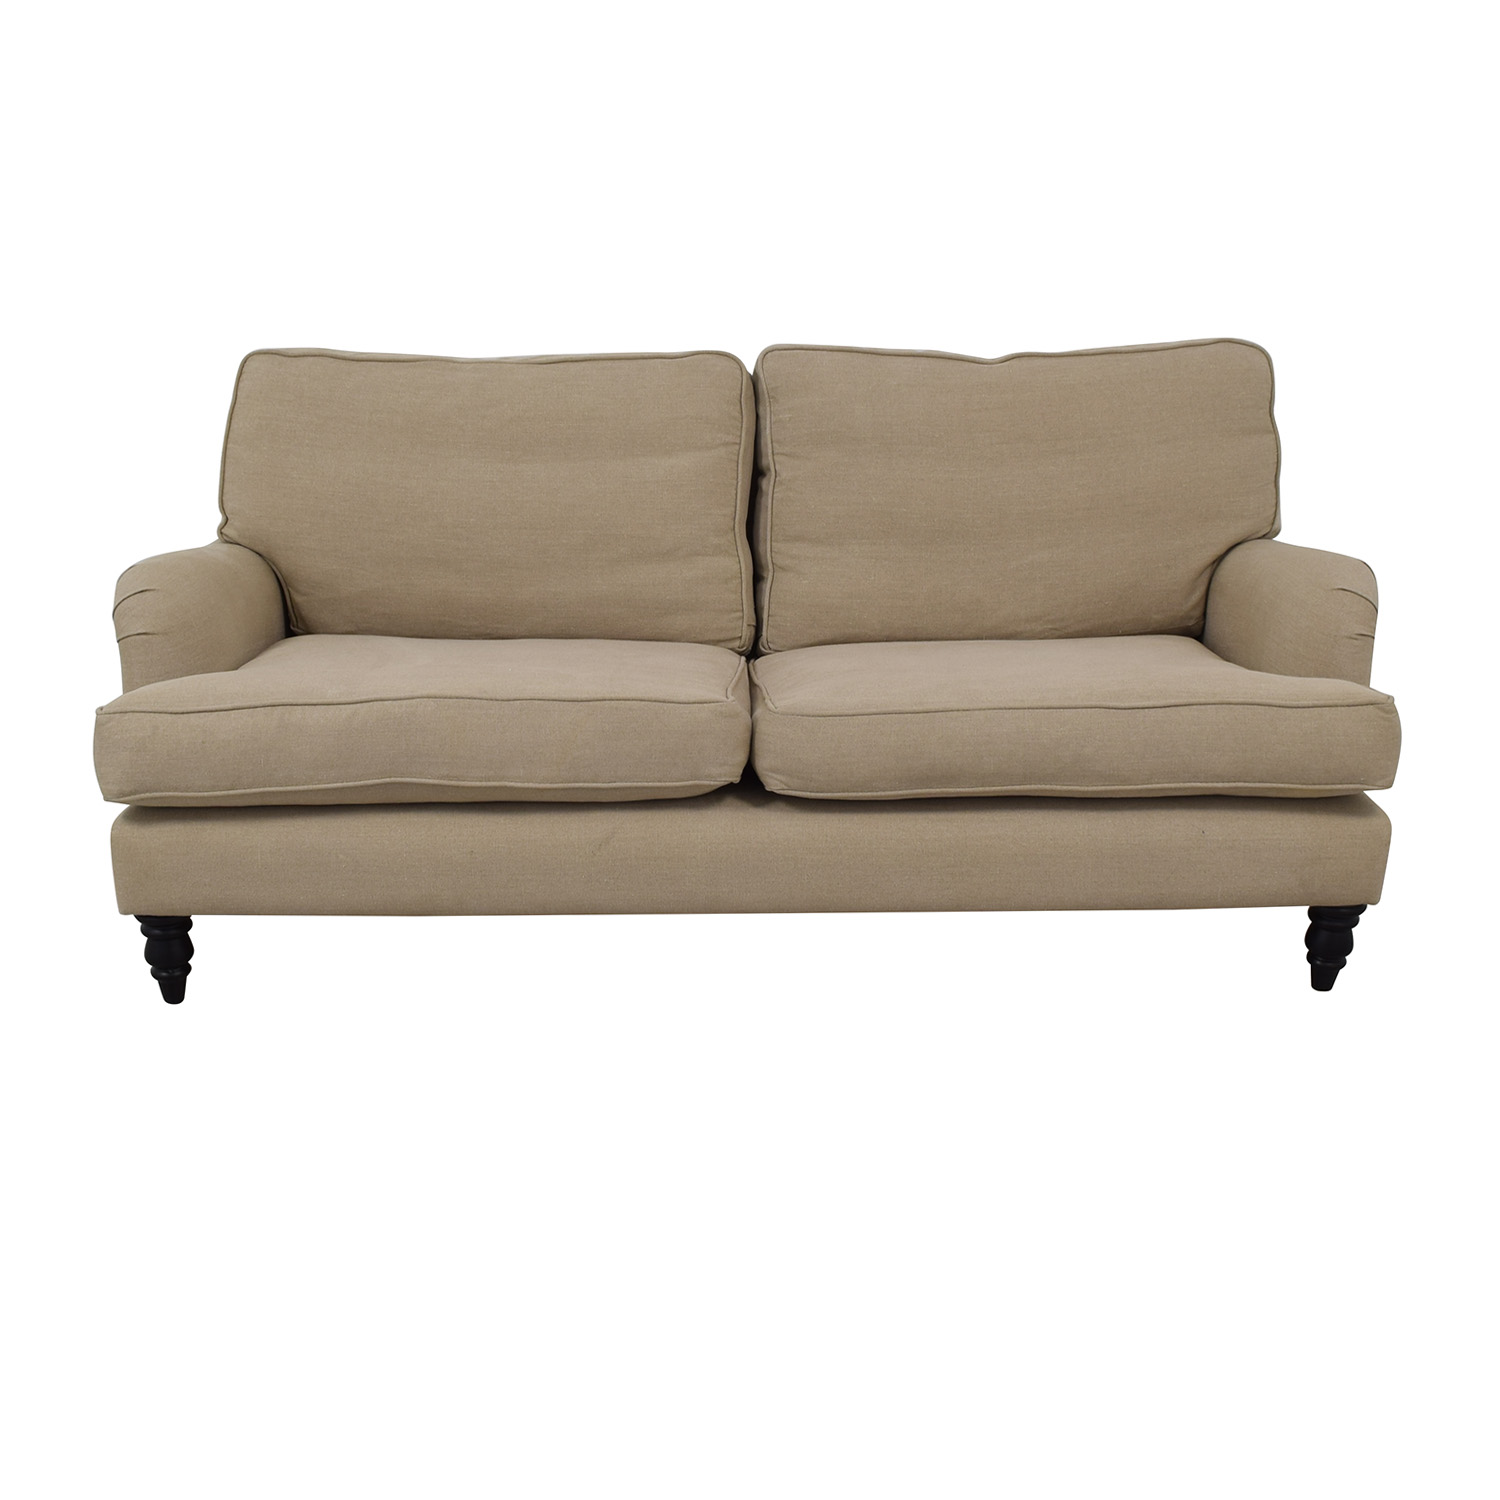 shop Sofa.com Sofa.com Bluebell Sofa online